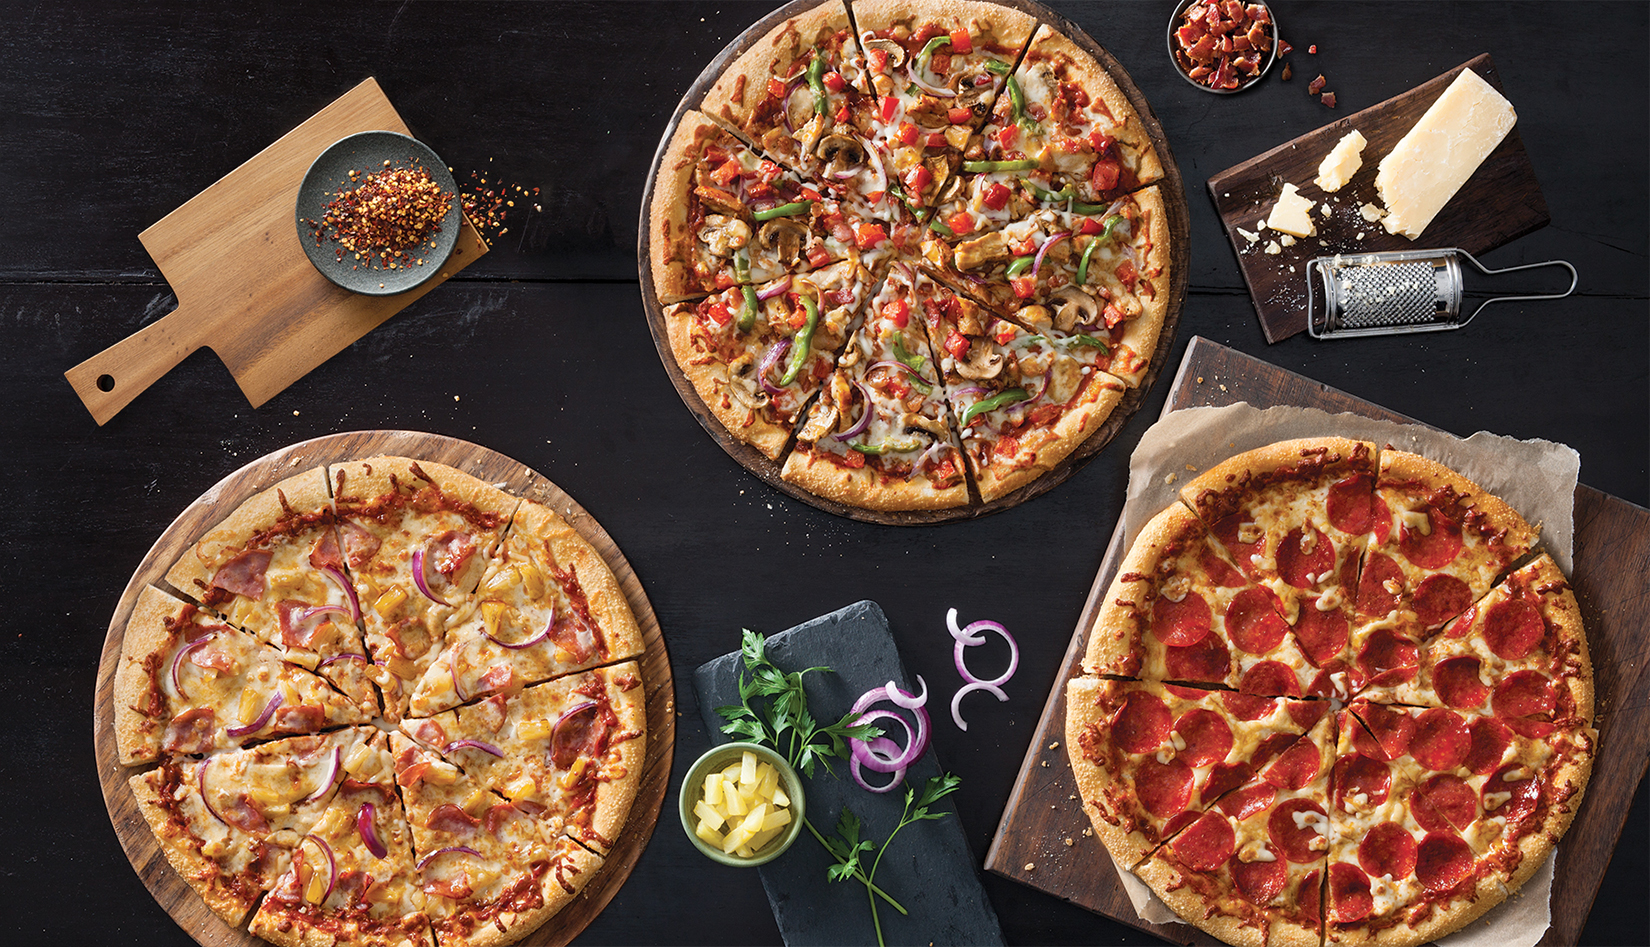 Pizza Hut's extra-large menu revamp 'unusual'